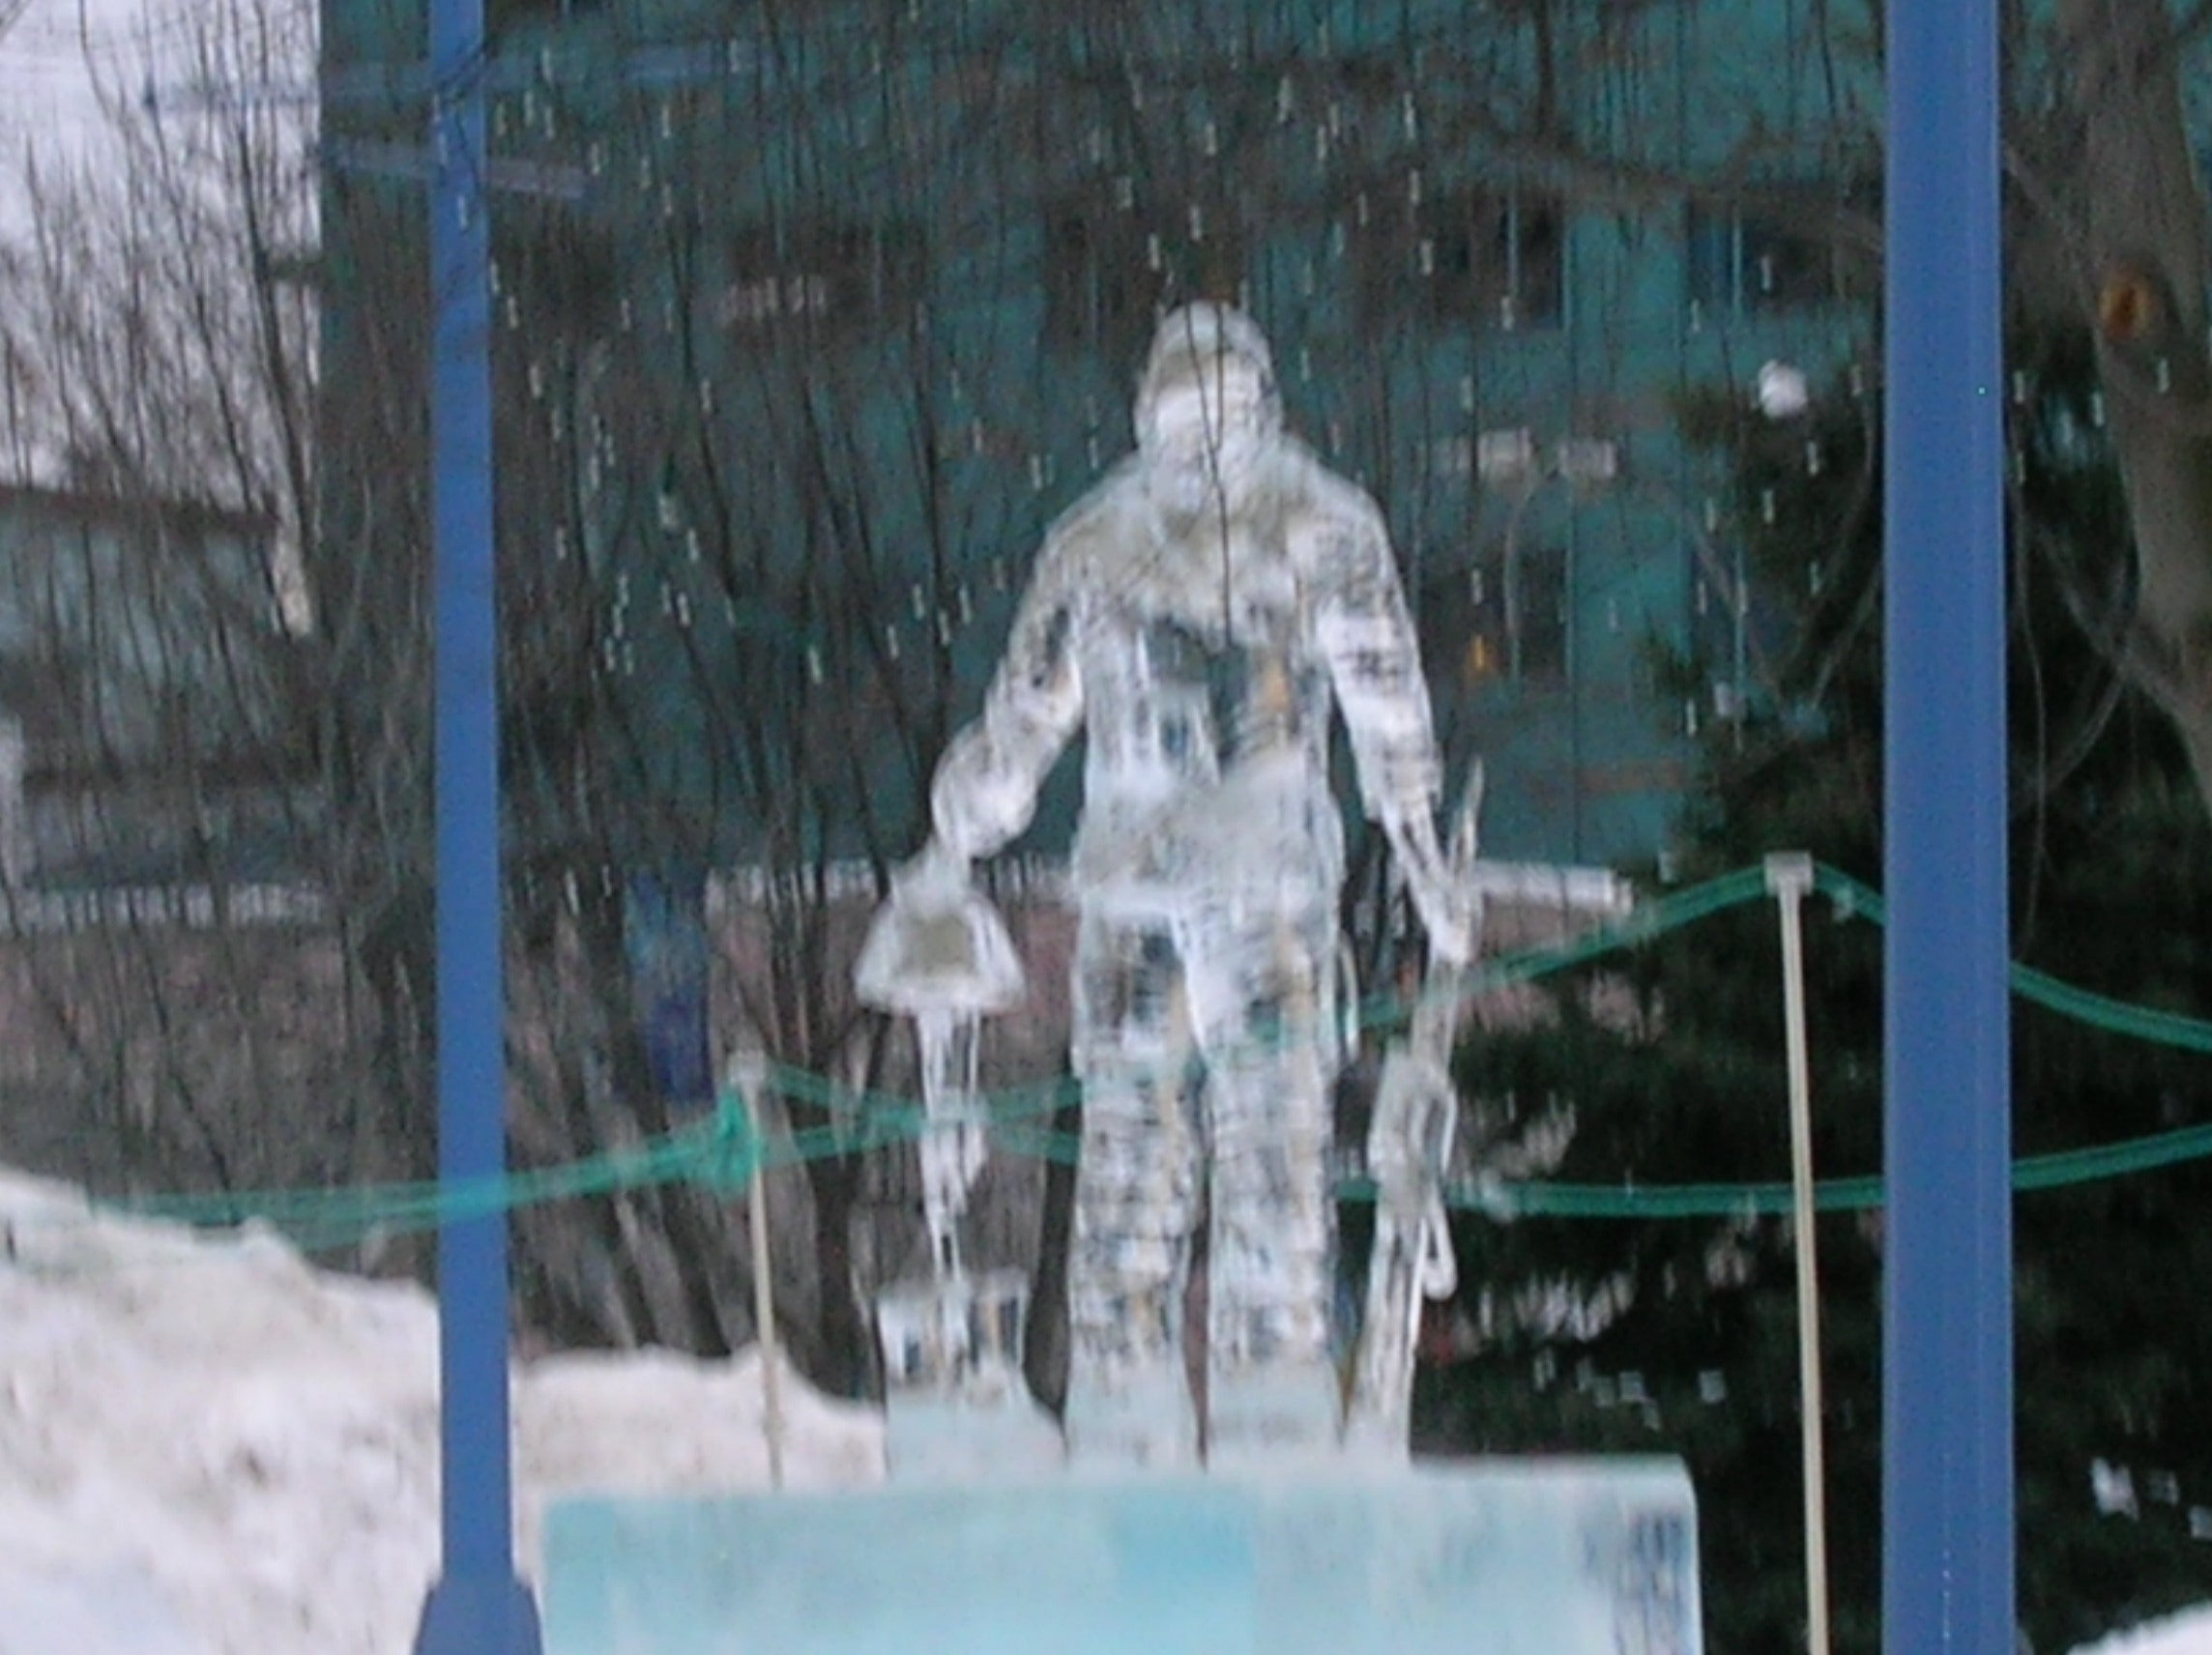 Crystal Gallery of Ice (Sculpture de glace)